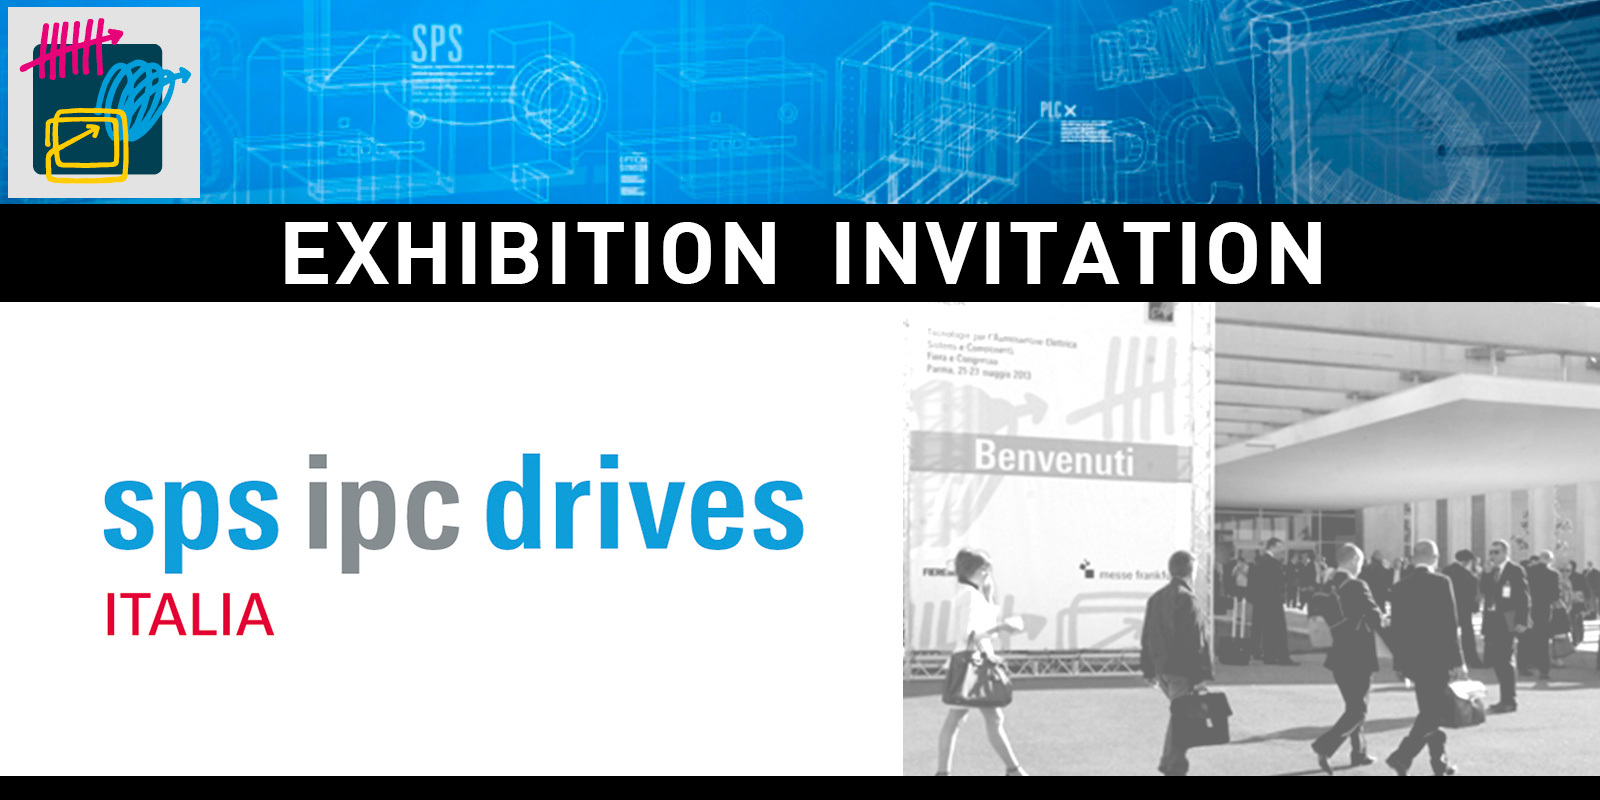 Italtronic invites you at SPS IPC DRIVES ITALIA 2016